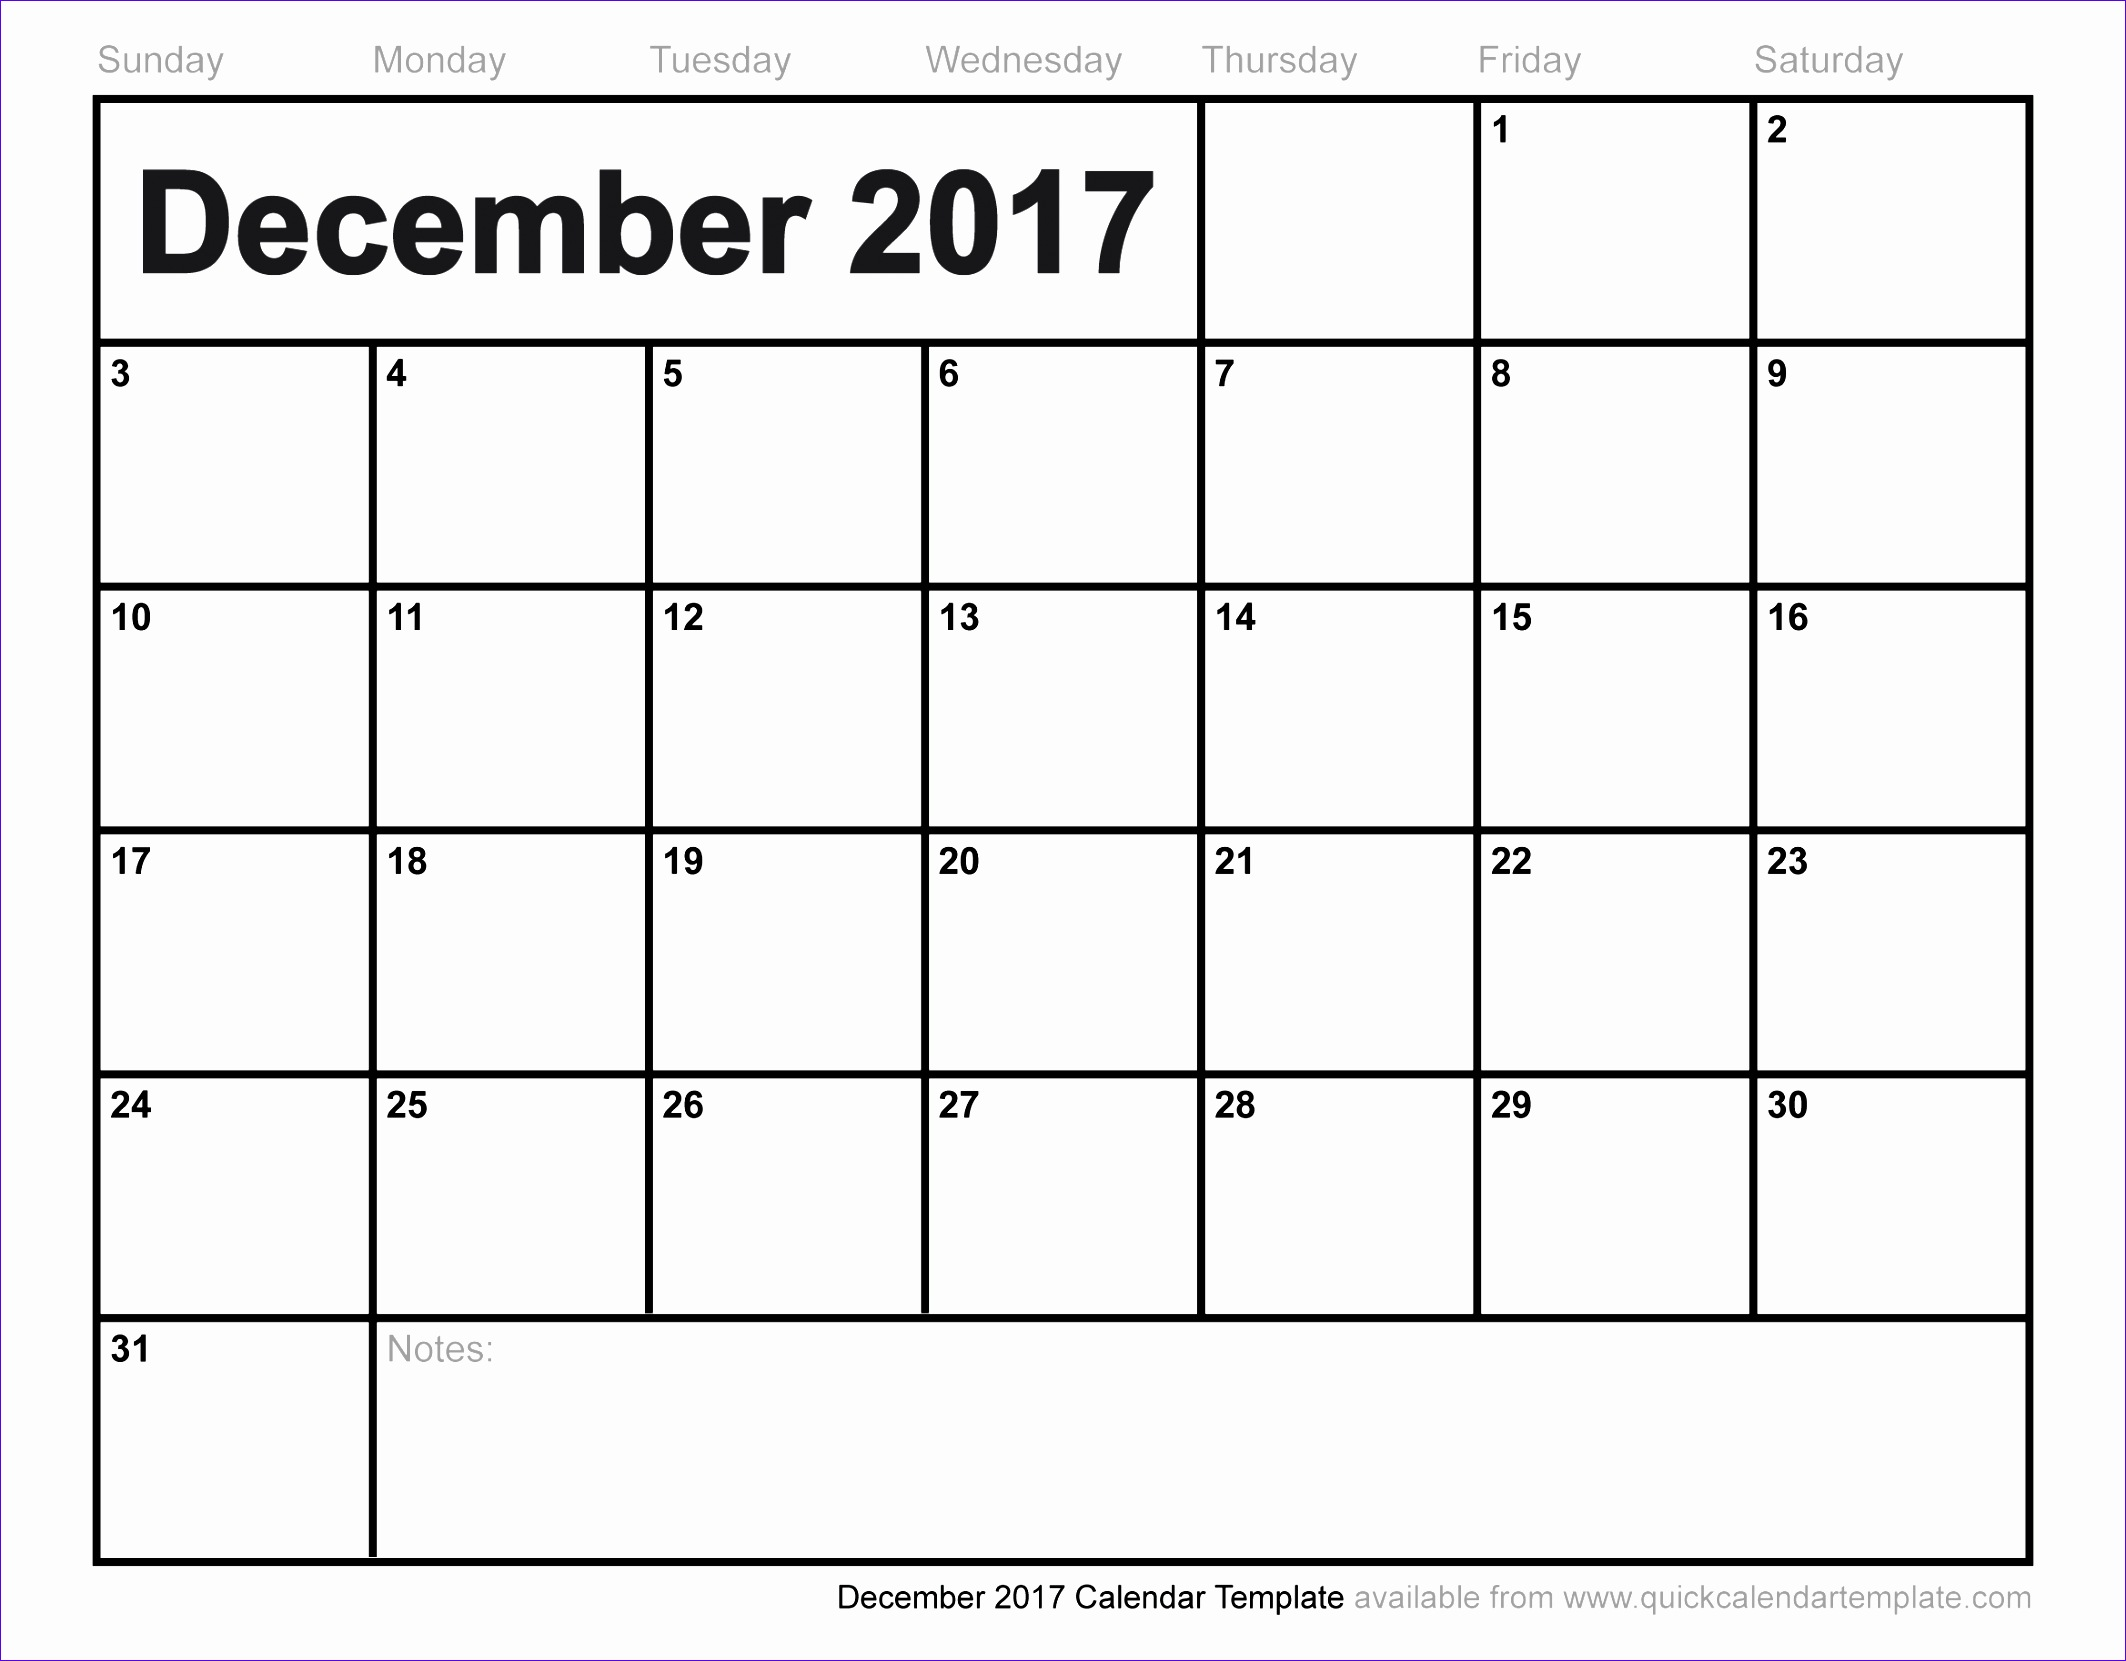 Schedule In Excel Template P3tfa Awesome December 2017 Calendar 23371806